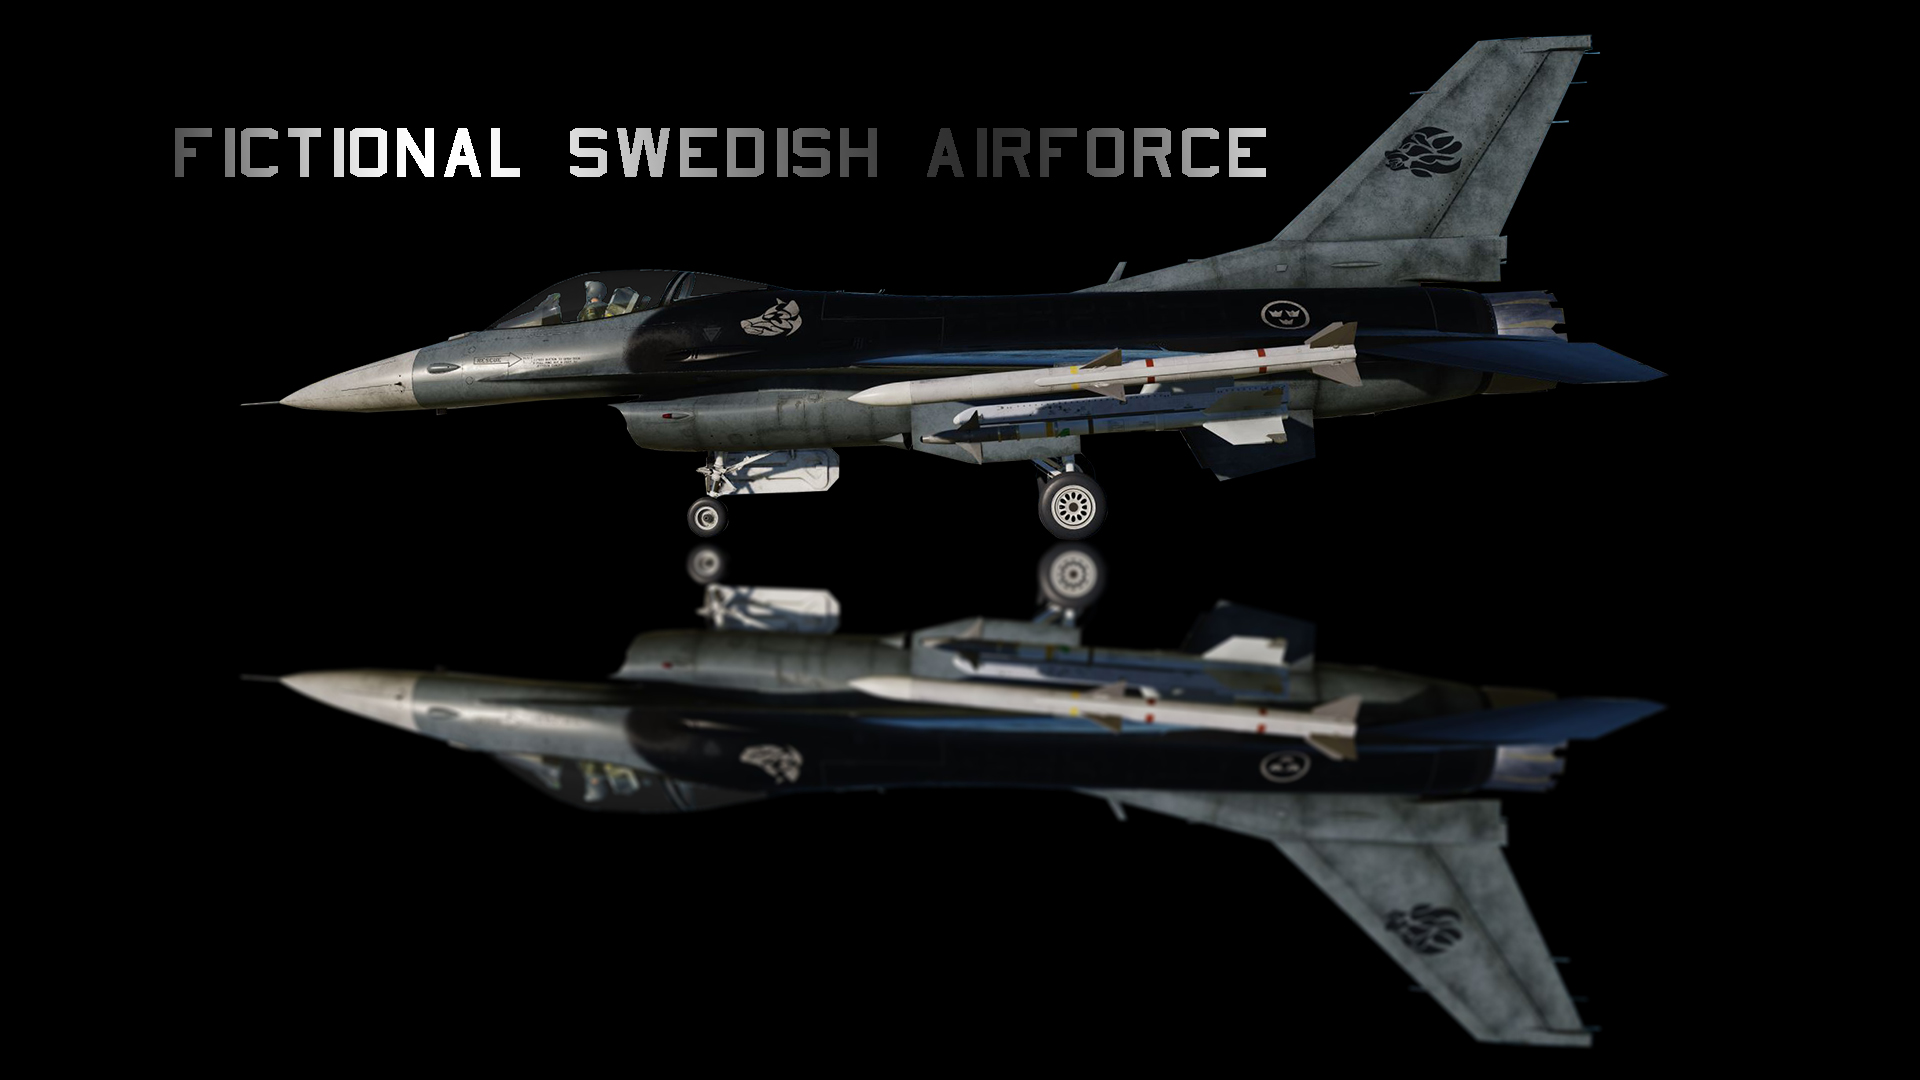 Fictional Swedish Airforce